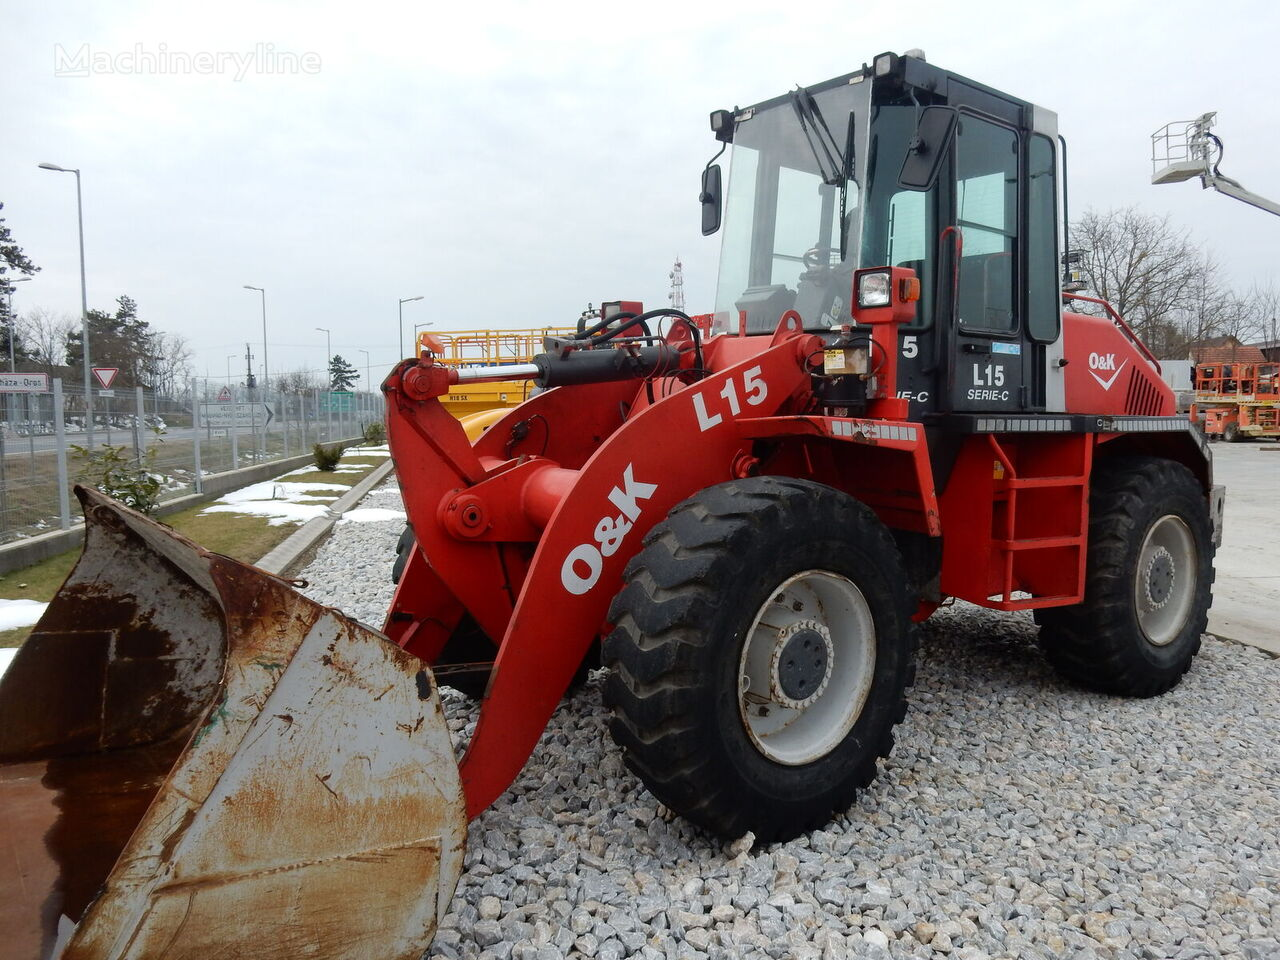 O&K L15C wheel loader